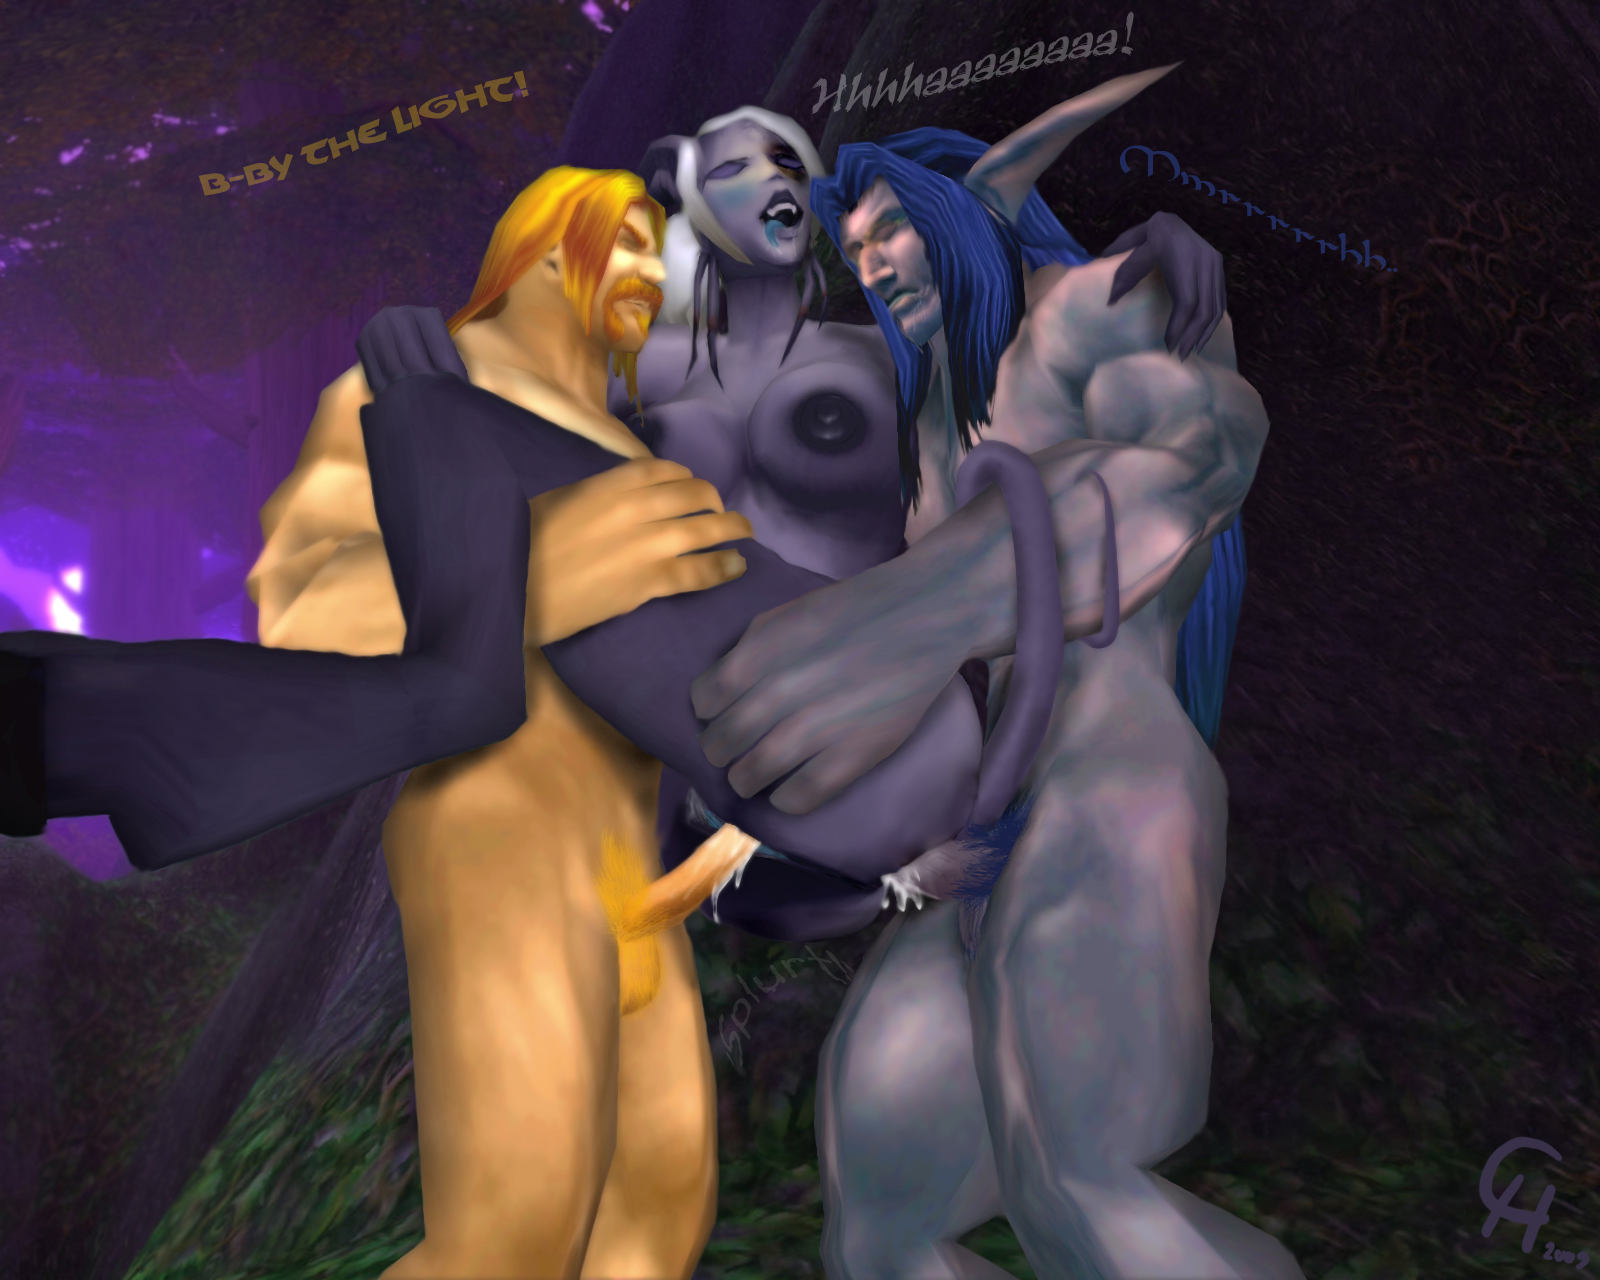 Nude mode sex in wow adult photo